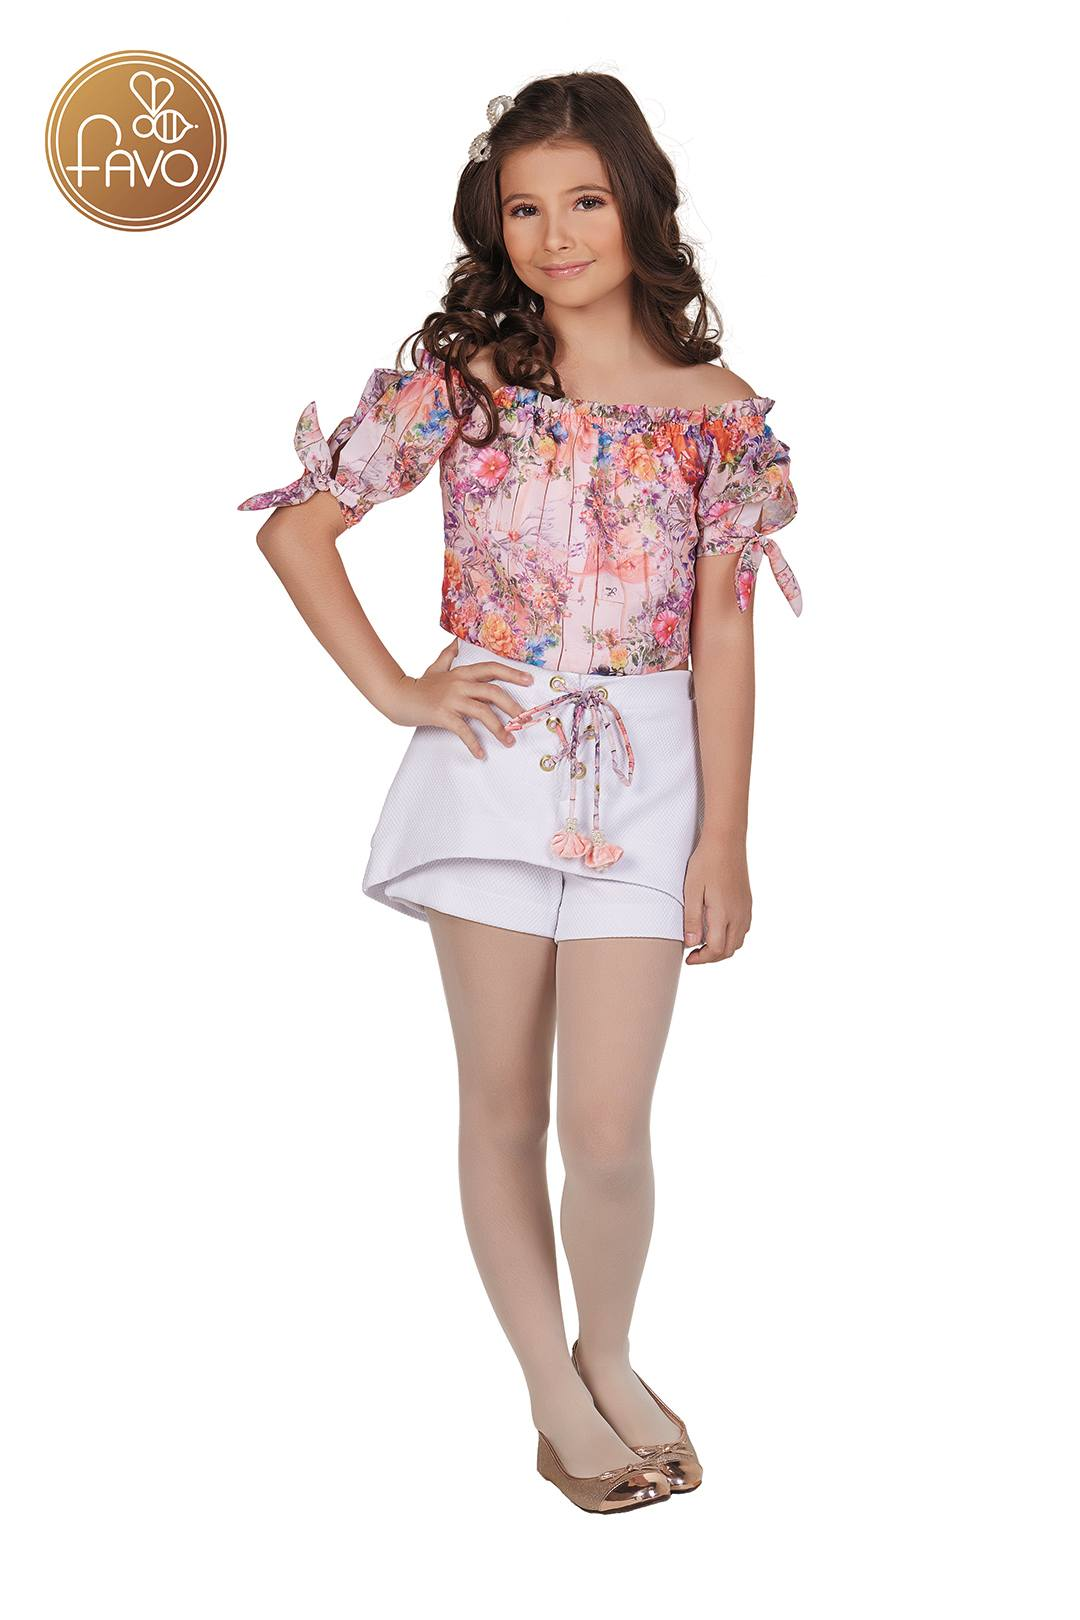 CONJ SHORT PIQUET BLUSA ESTAMPADA